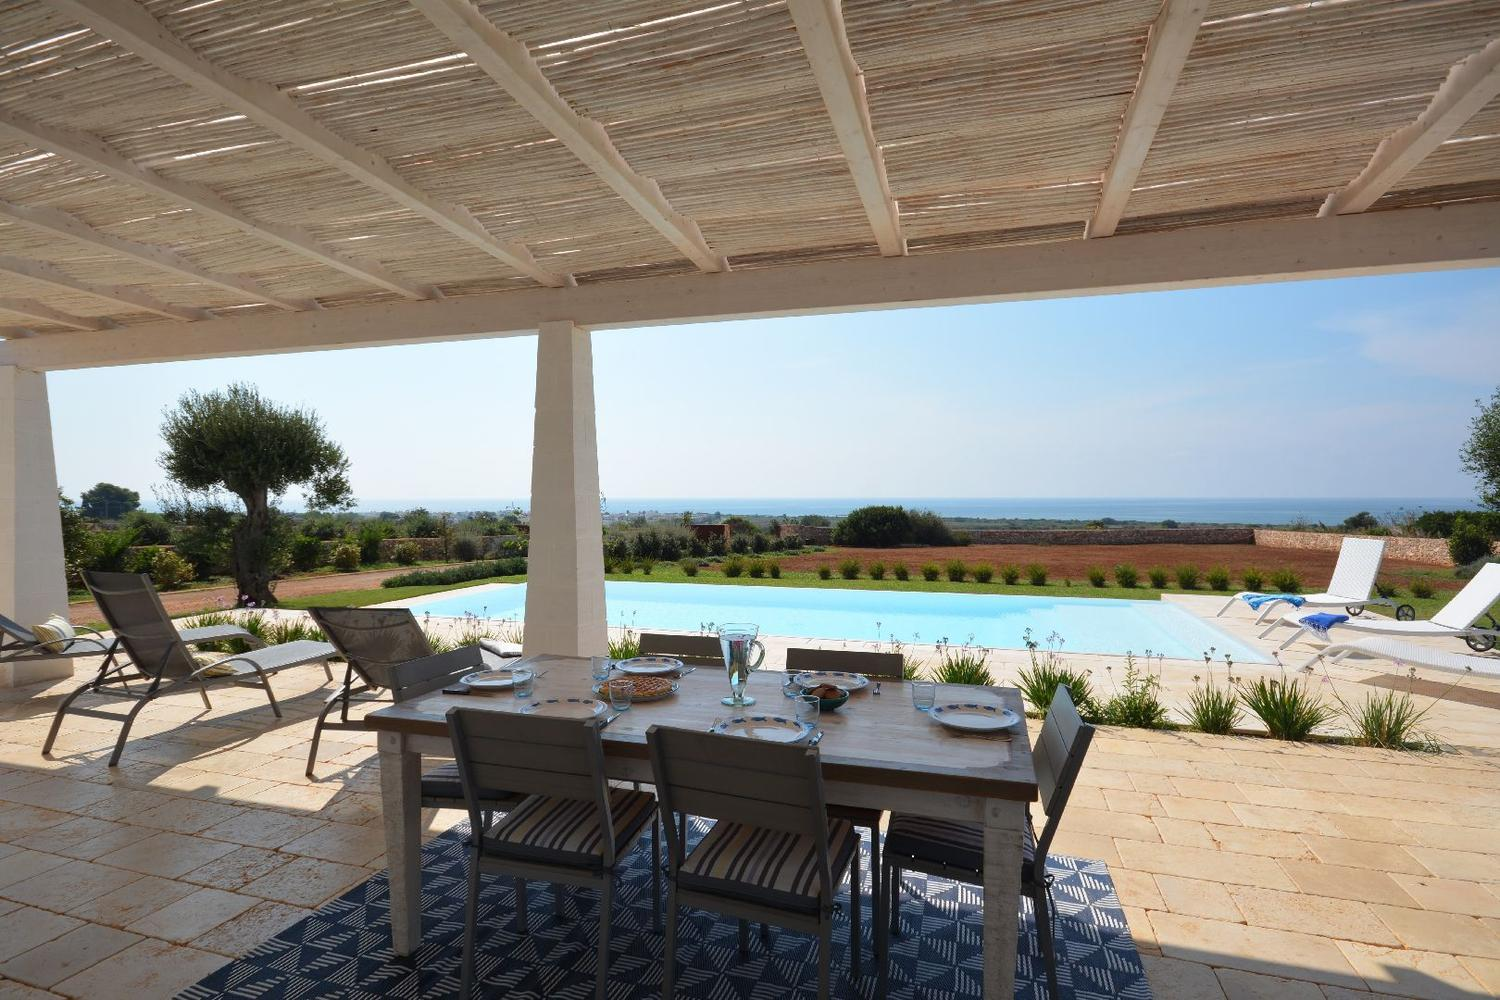 Furnished and equipped Patio with Sea View